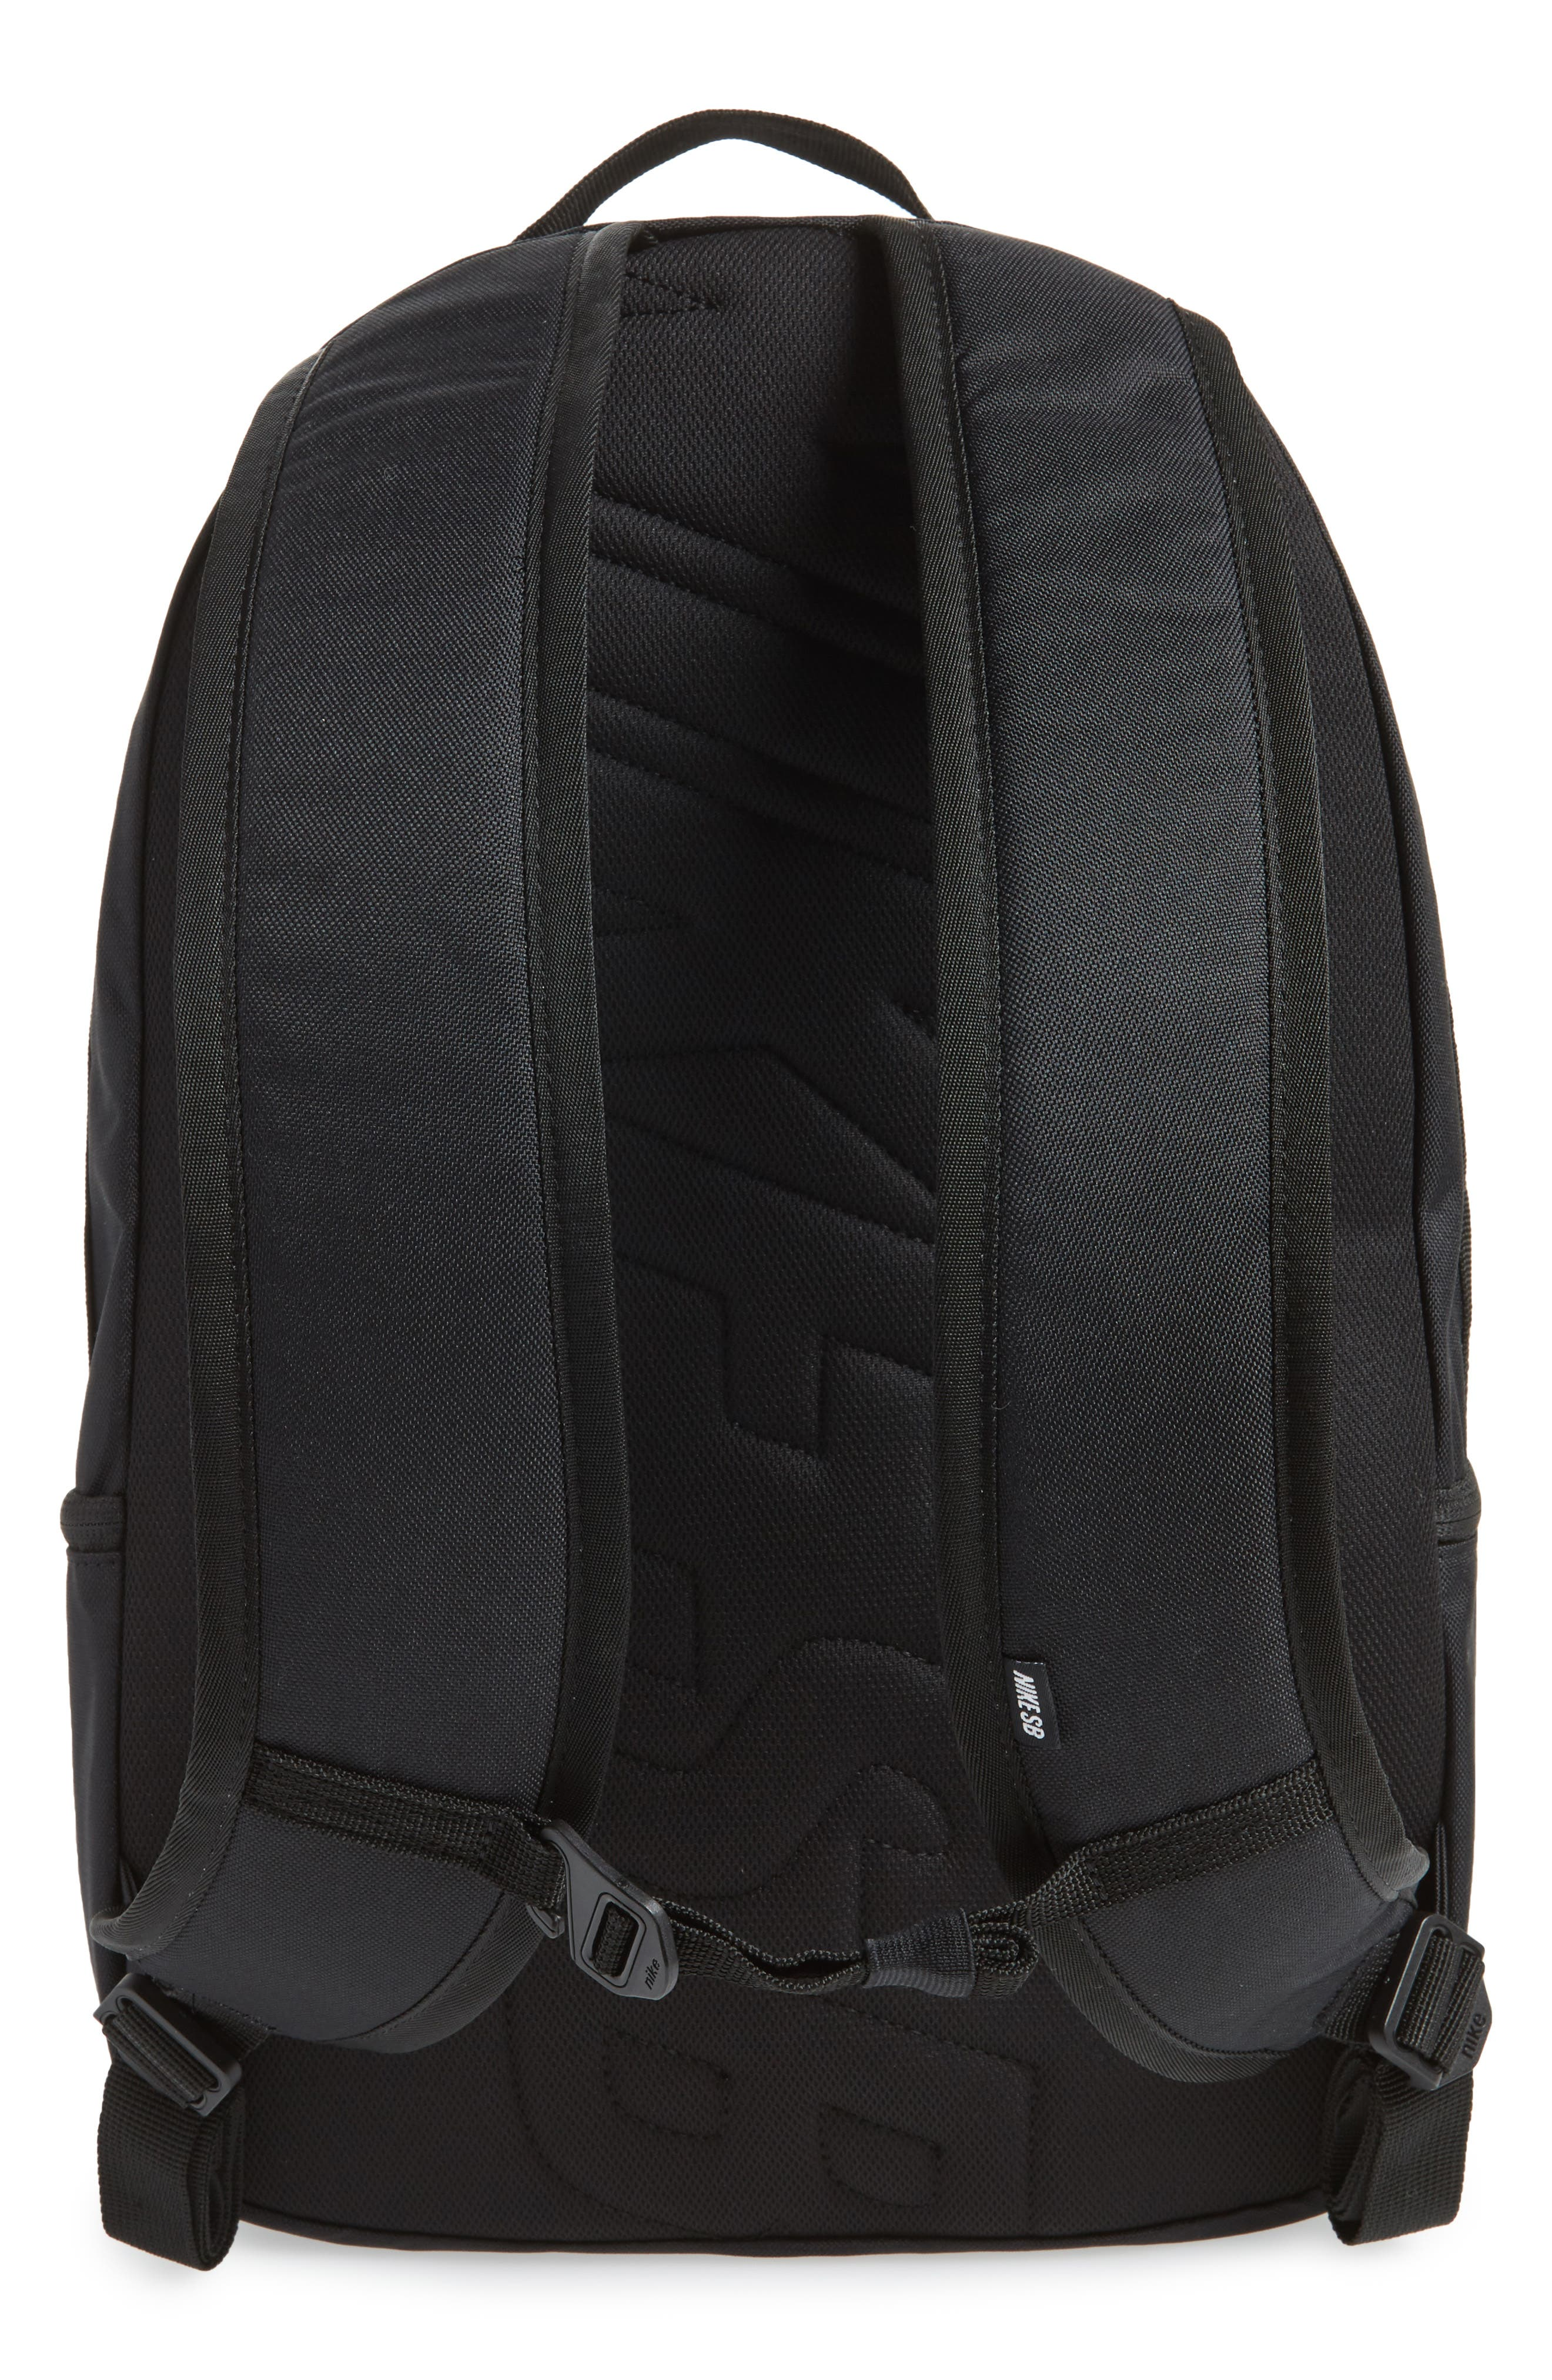 Icon Backpack,                             Alternate thumbnail 3, color,                             010